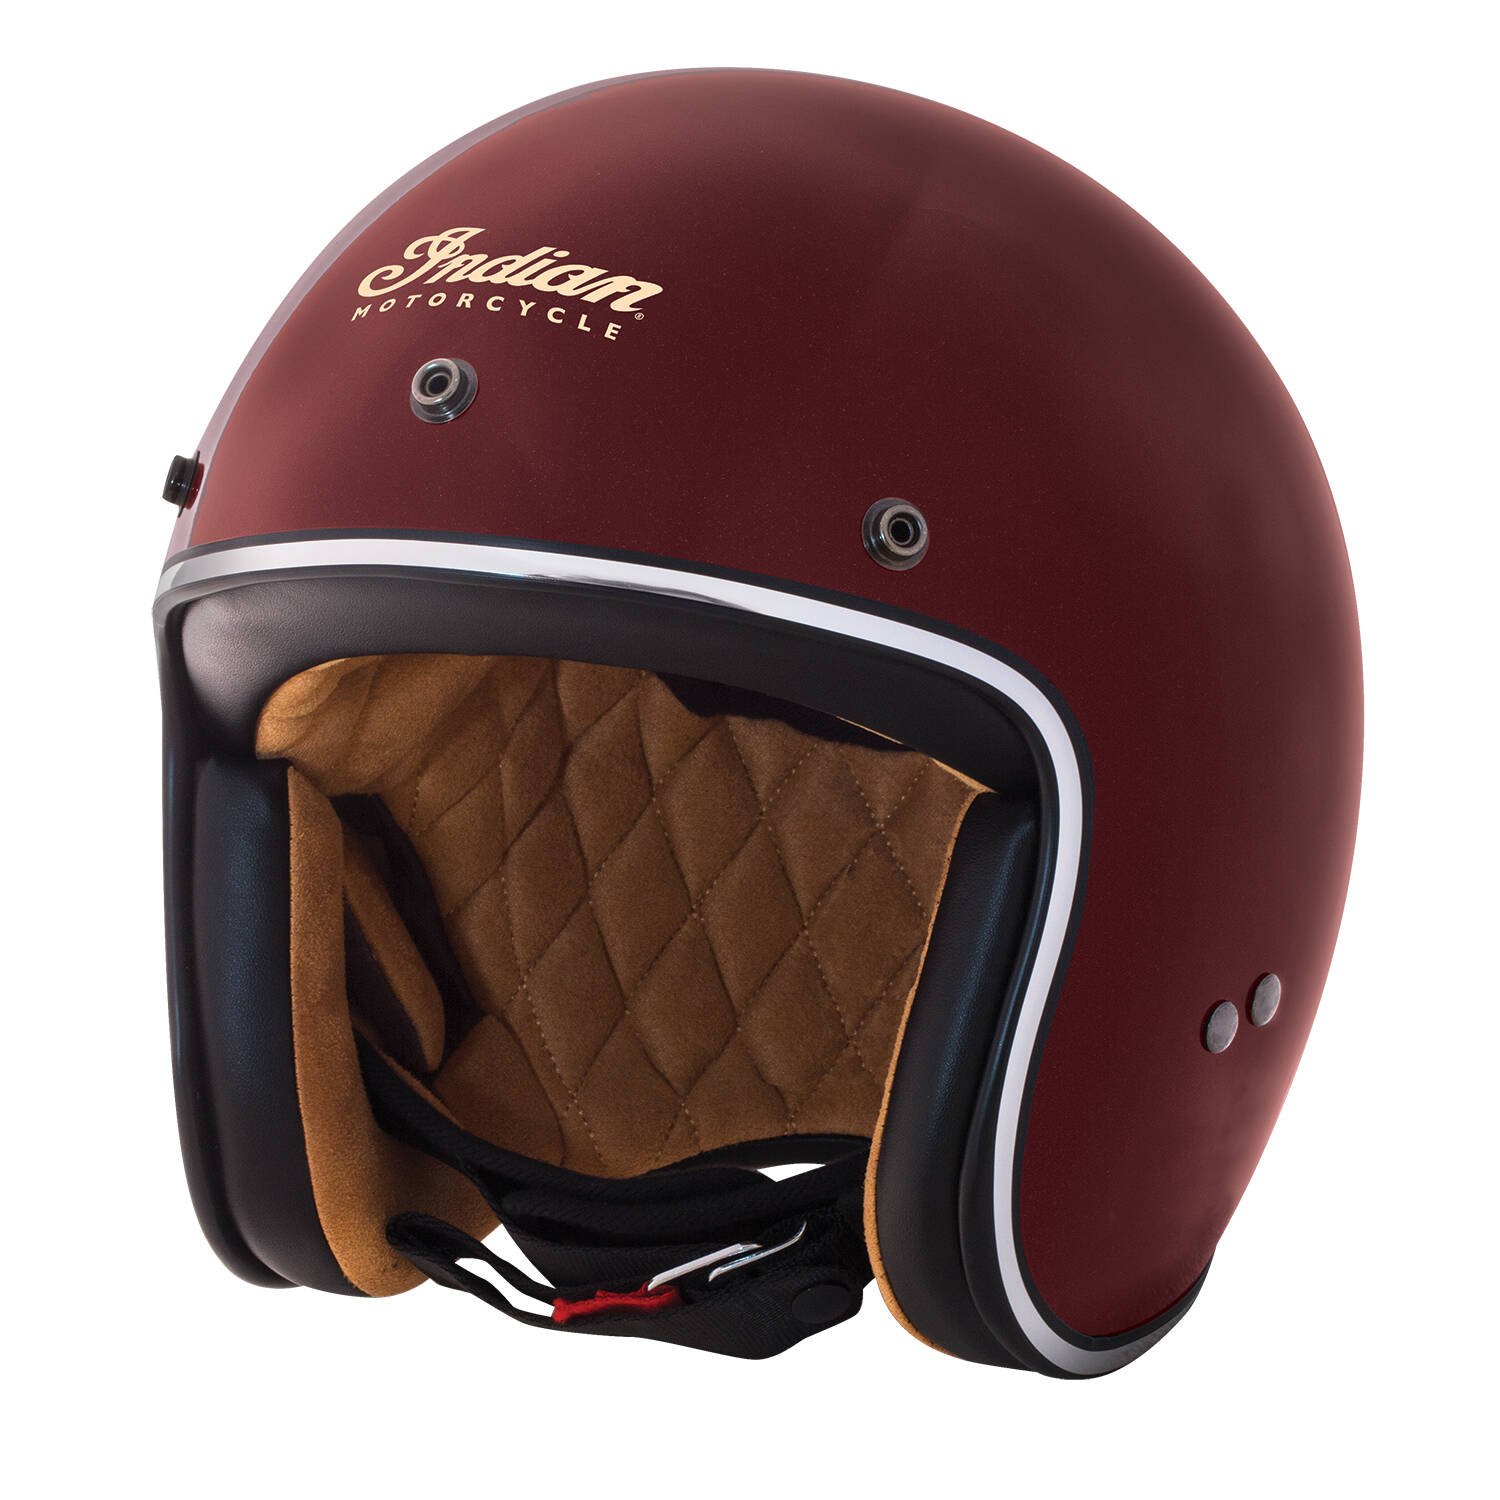 save up to 80% first look hot new products Red Retro Open Face Helmet by Indian Motorcycle®